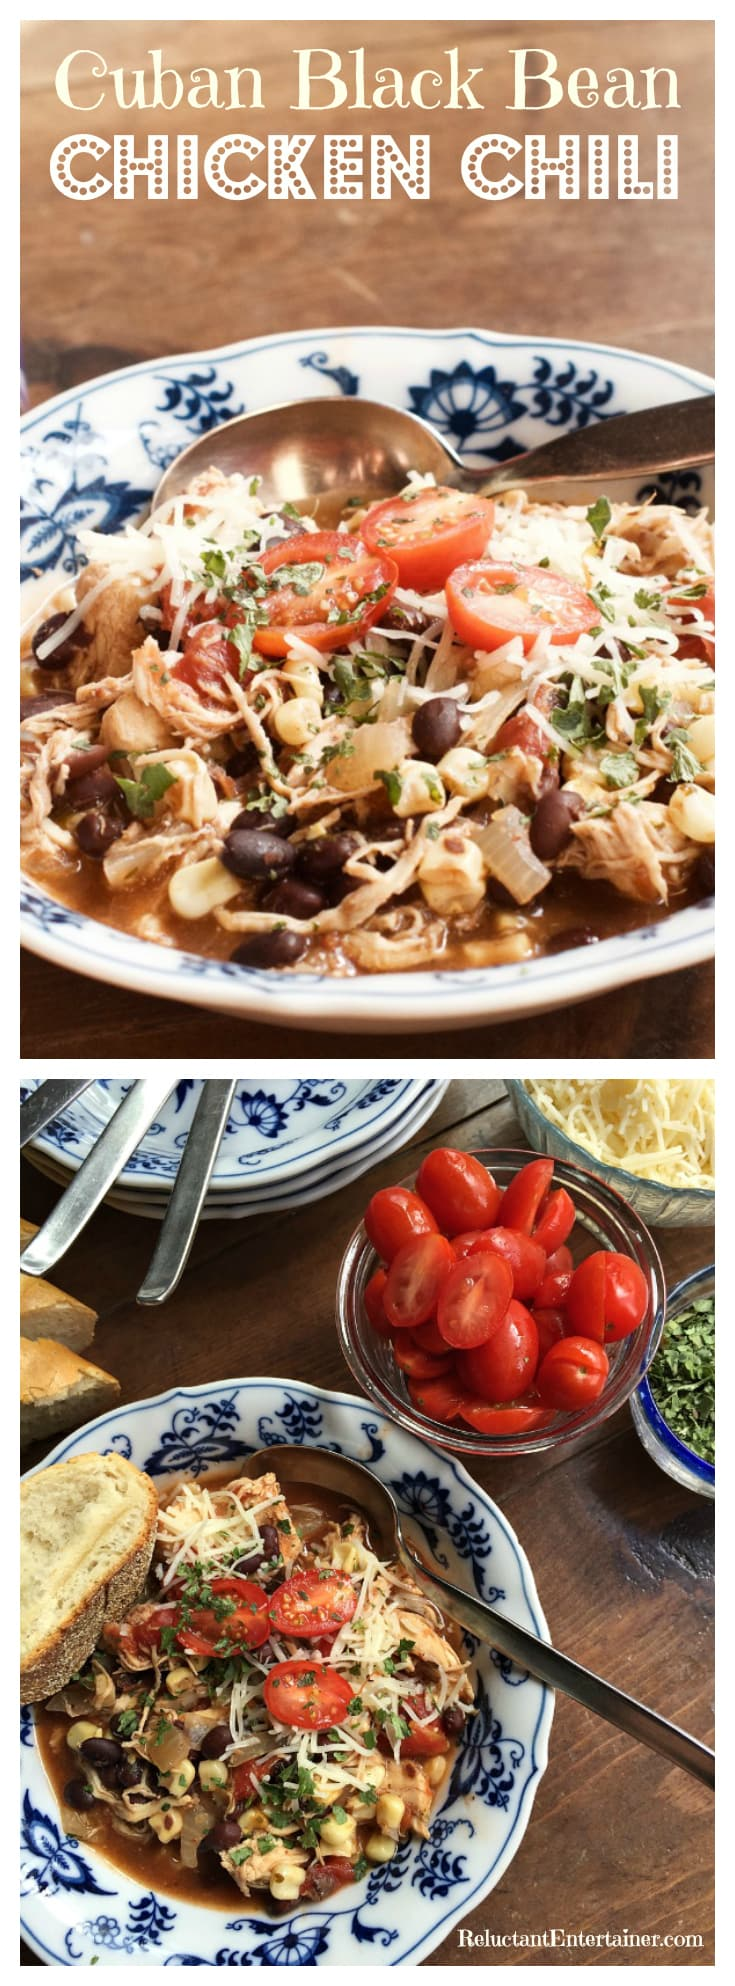 Cuban Black Bean Chicken Chili | ReluctantEntertainer.com